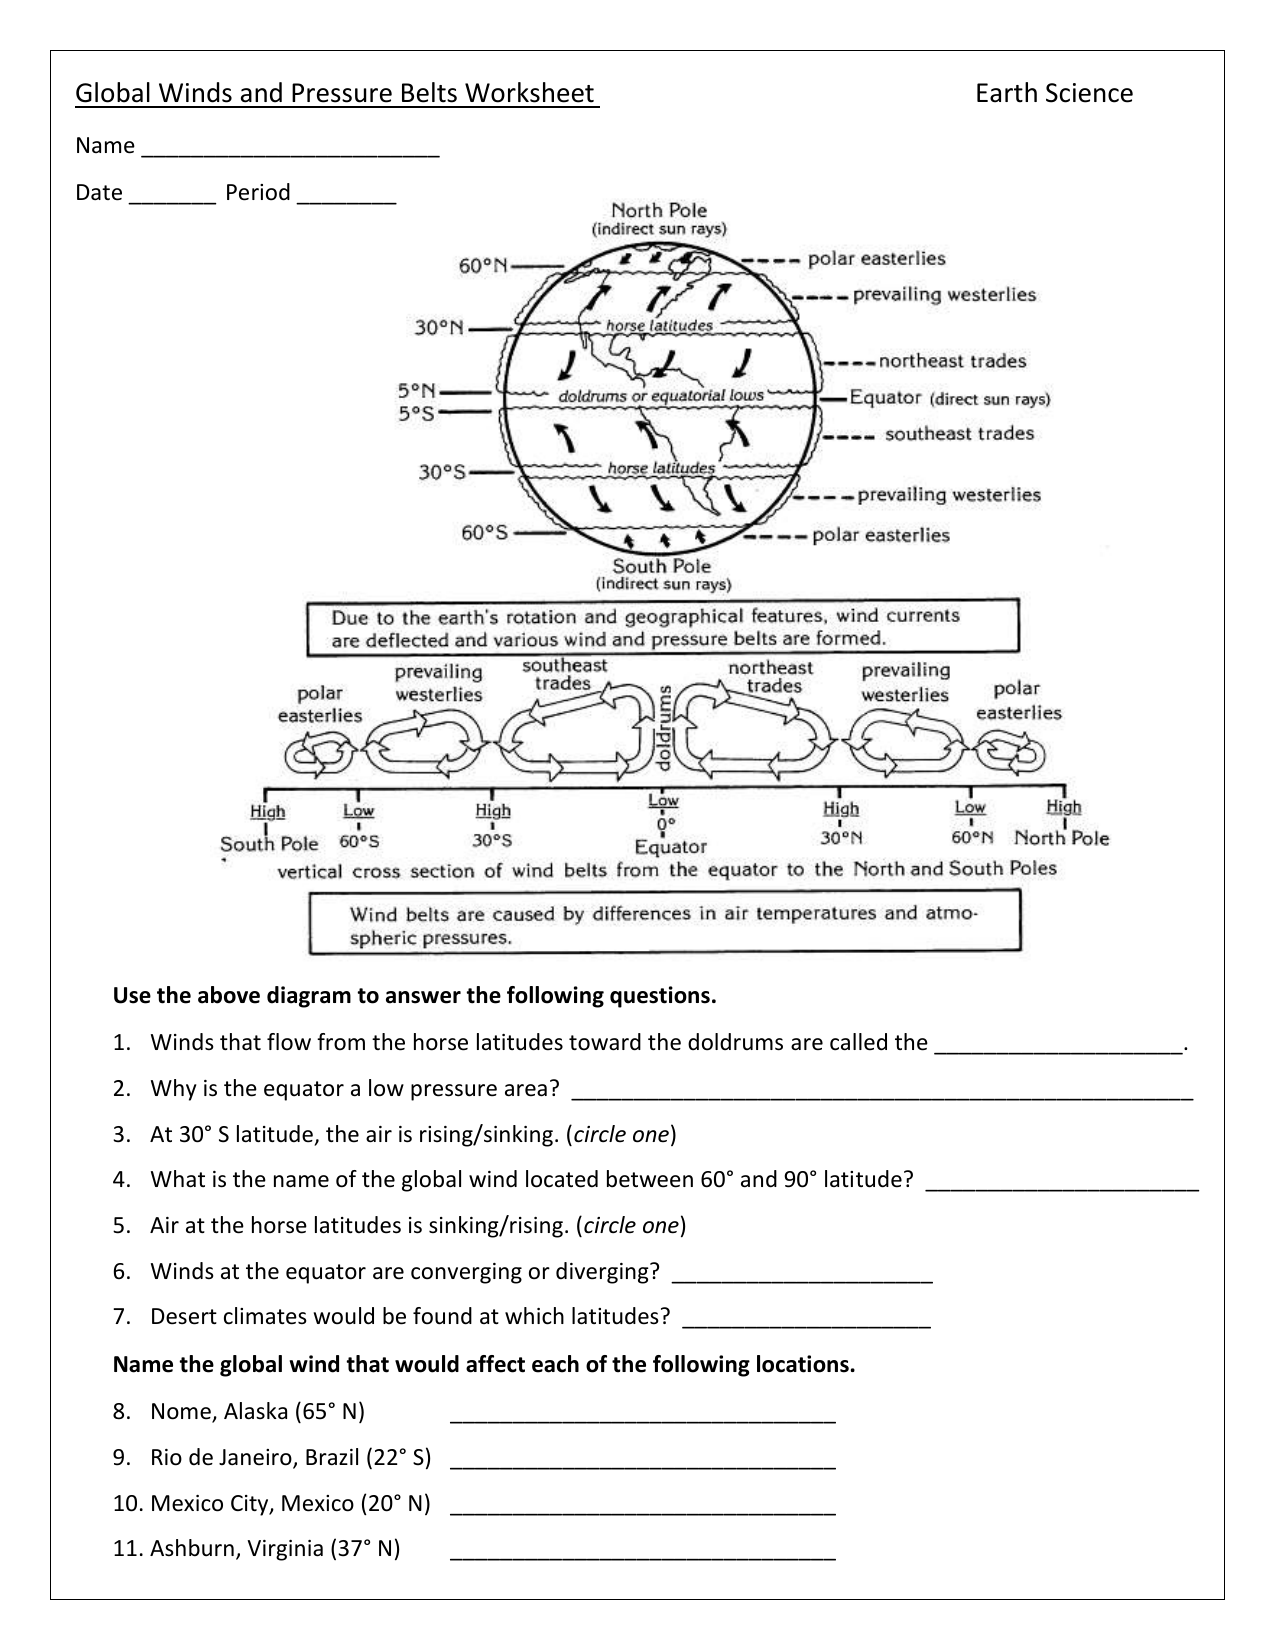 Global Winds And Pressure Belts Worksheet Earth Science